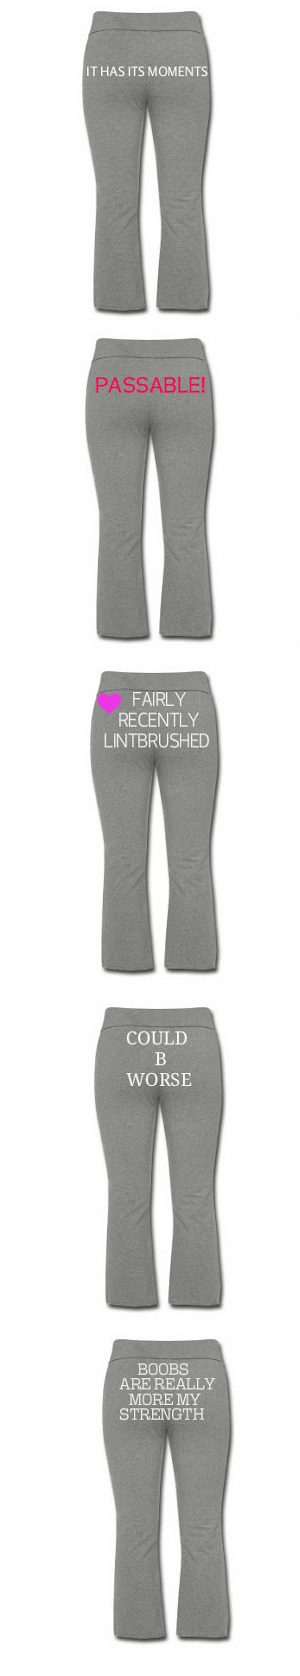 sweatpants words yoga pants poorly dressed - 7140874496